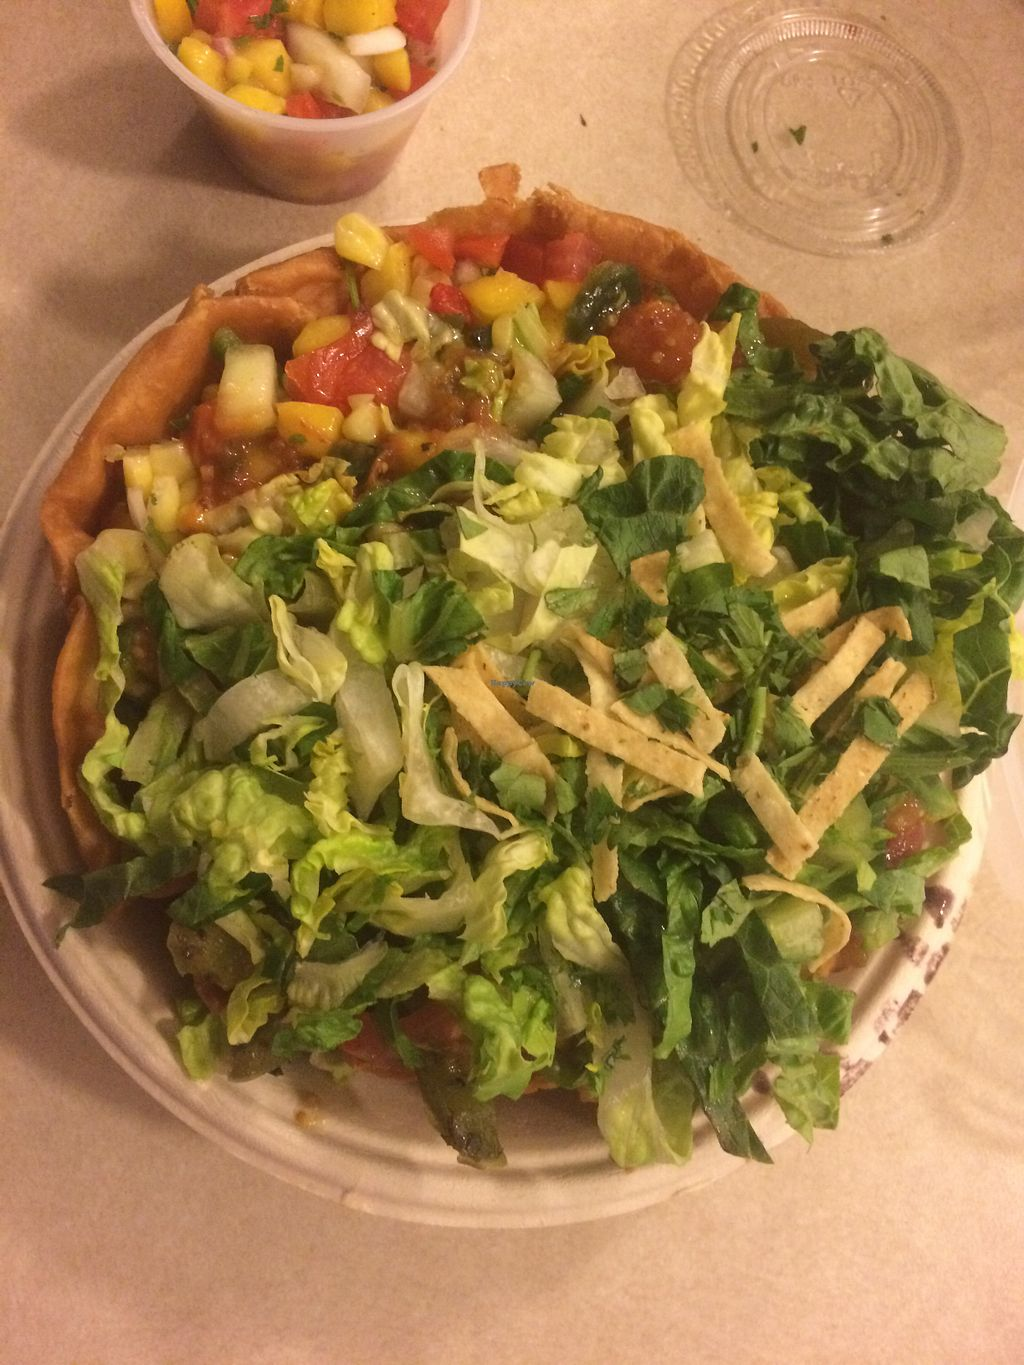 """Photo of Qdoba  by <a href=""""/members/profile/fruitiJulie"""" class=""""title__title"""" title=""""Profile of member fruitiJulie"""">fruitiJulie</a> <br/>Taco salad <br/> July 6, 2018  - <a href='/contact/abuse/image/113420/425850'>Report</a>"""